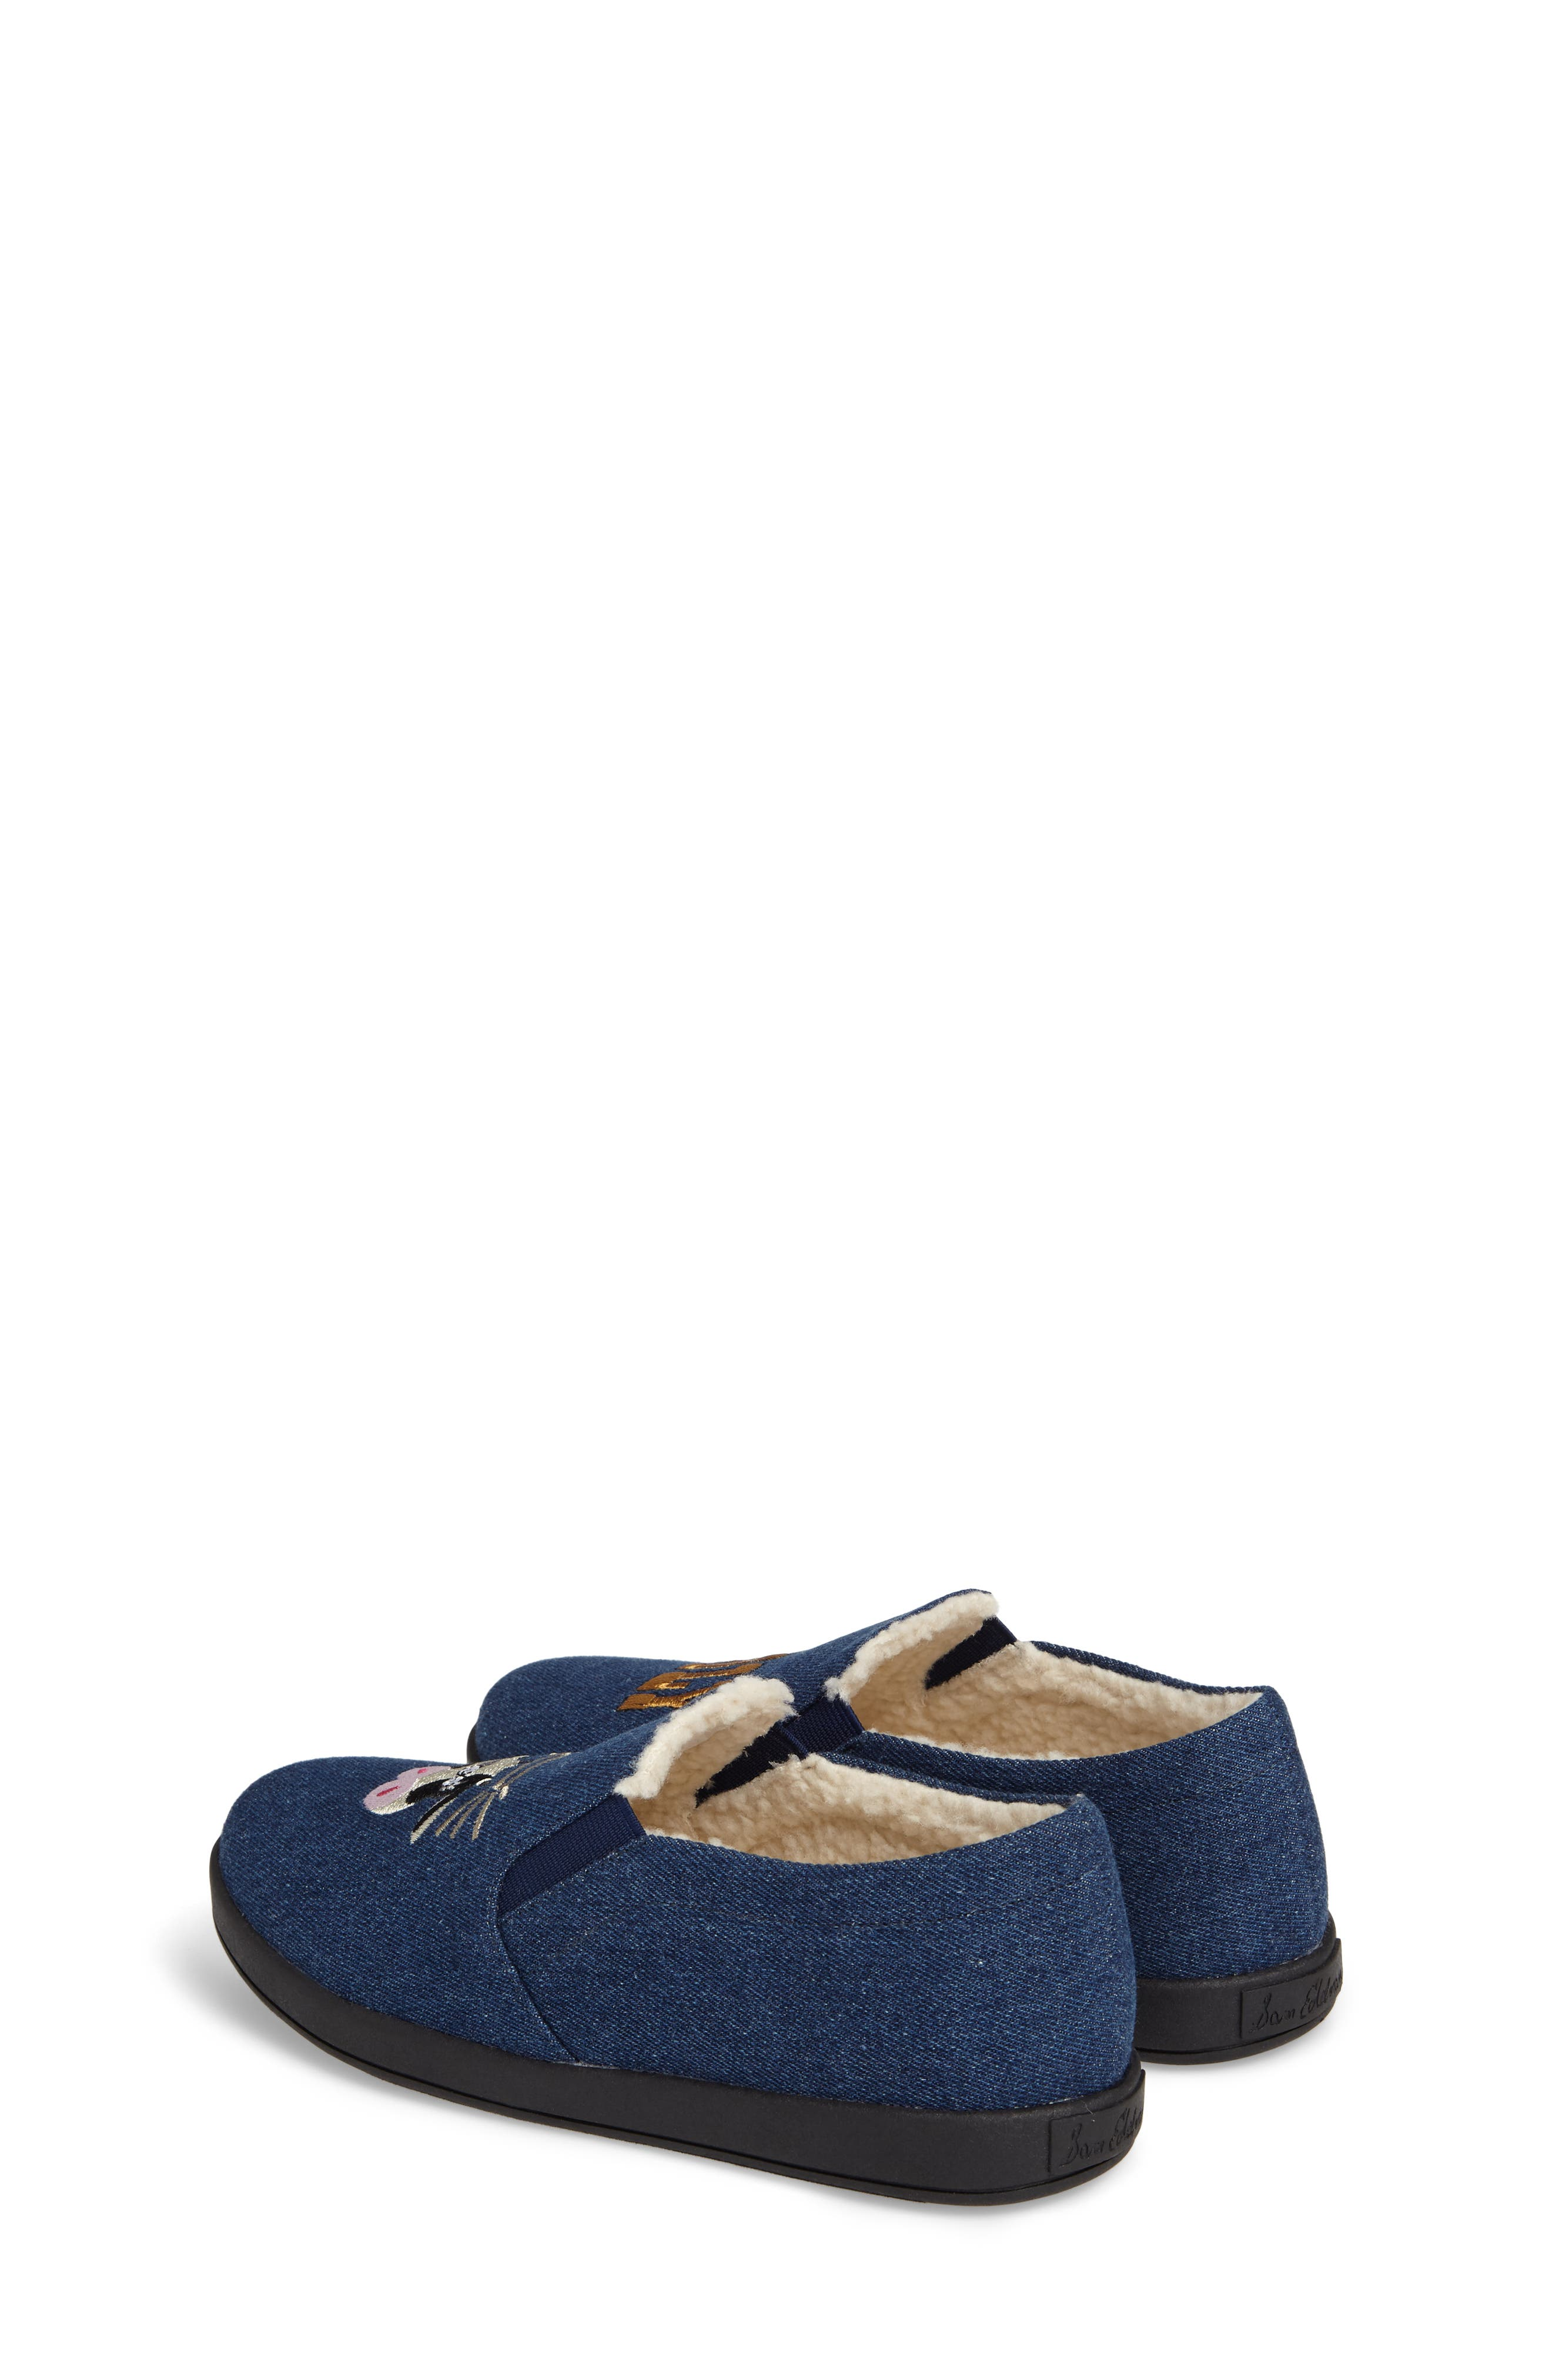 Cynthia Tala Holy Cow Embroidered Slippers,                             Alternate thumbnail 2, color,                             400